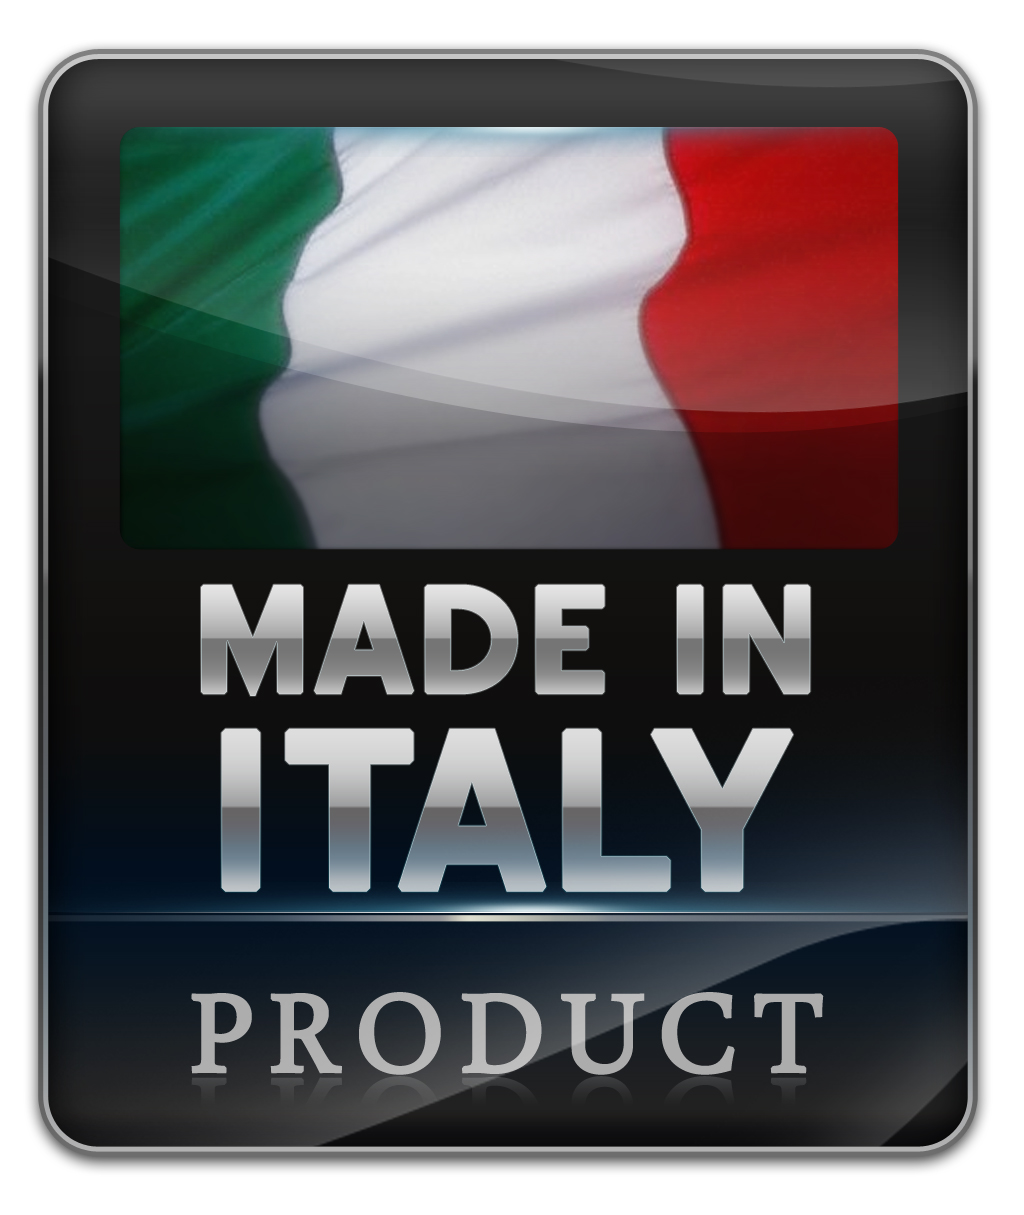 Made_In_Italy_Product_Logo_by_Steel89-copy